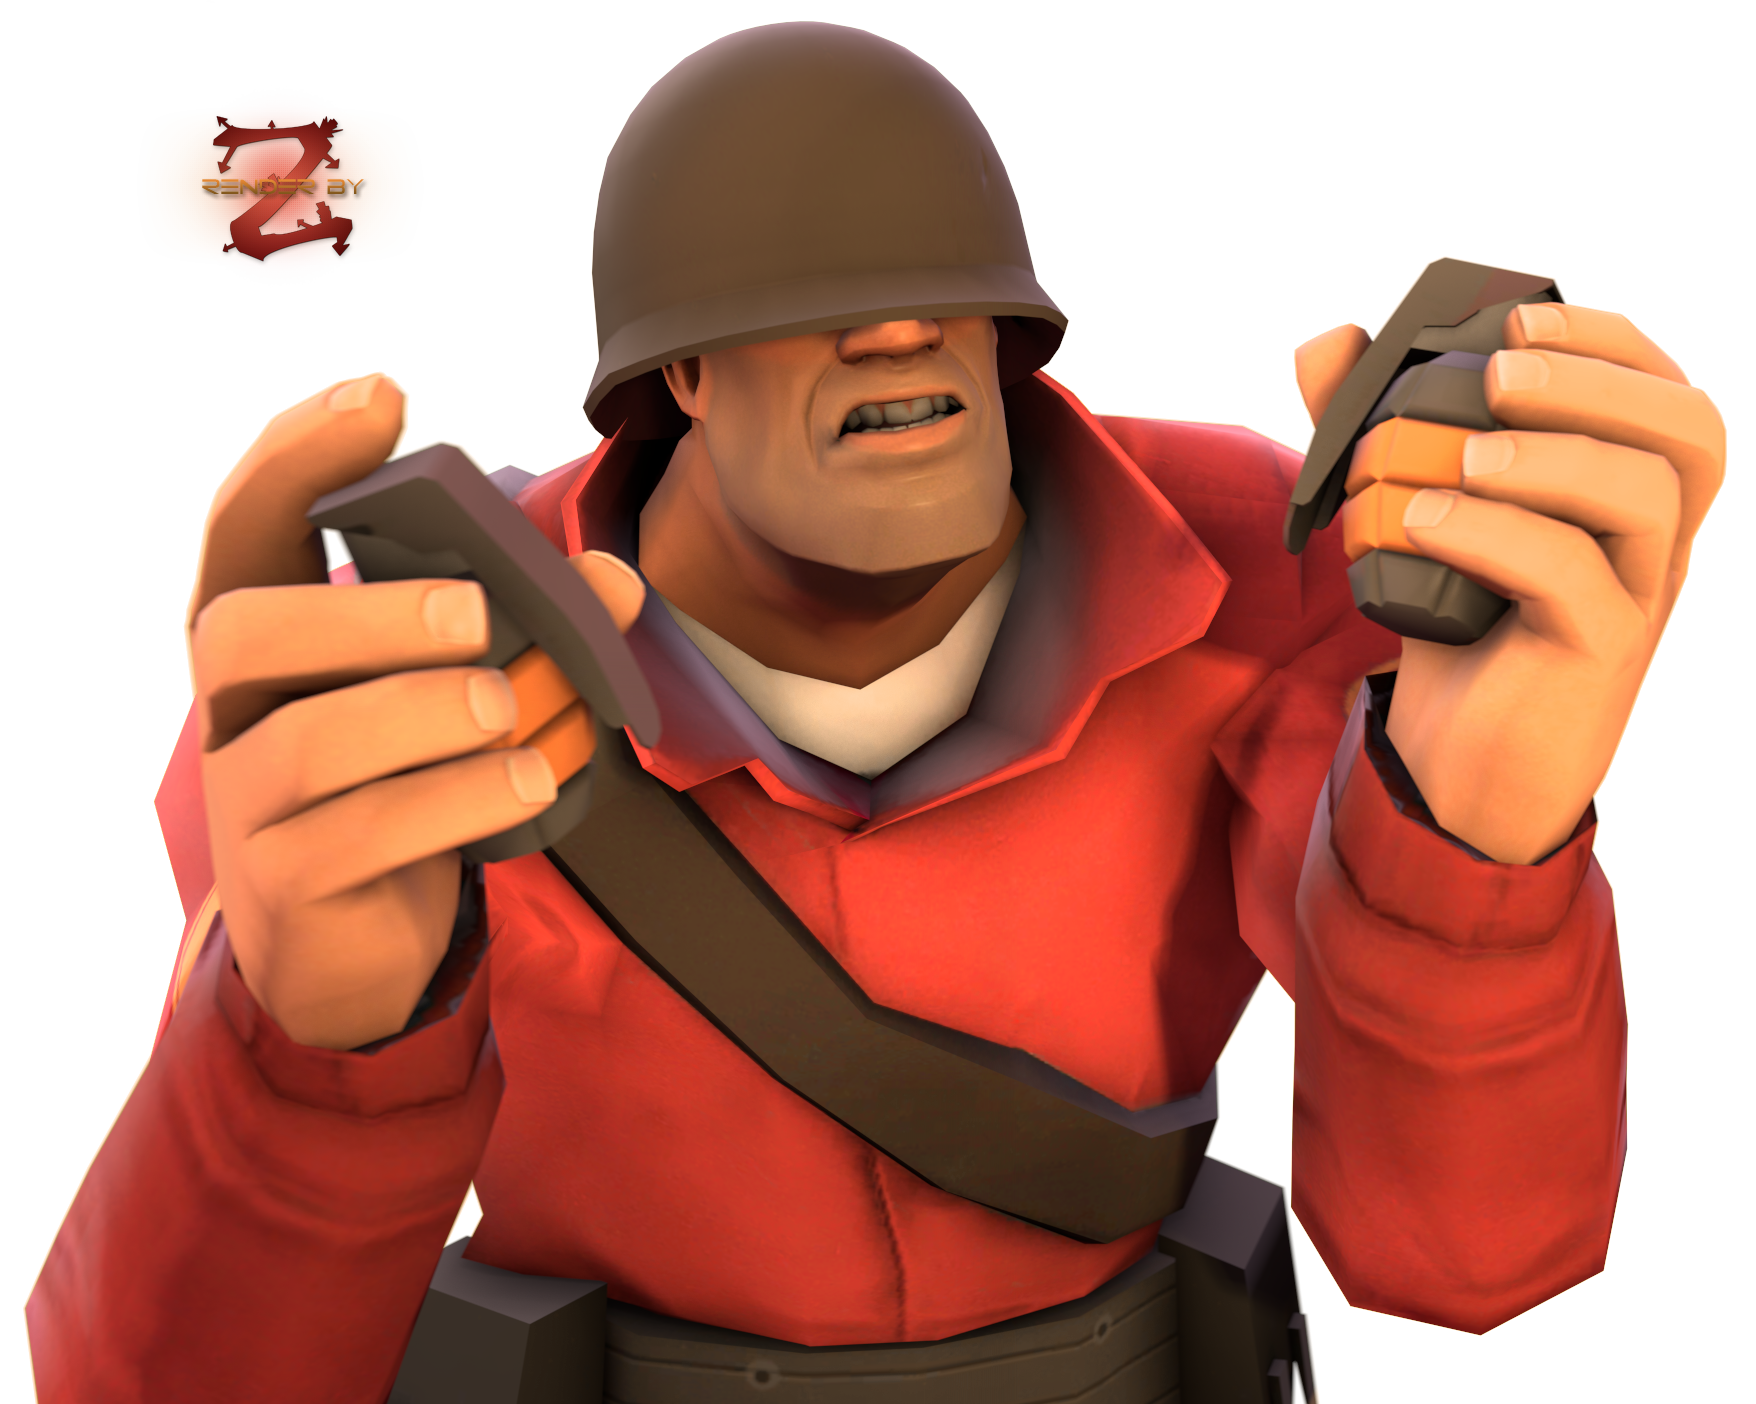 Tf2 soldier png. Image red tf death